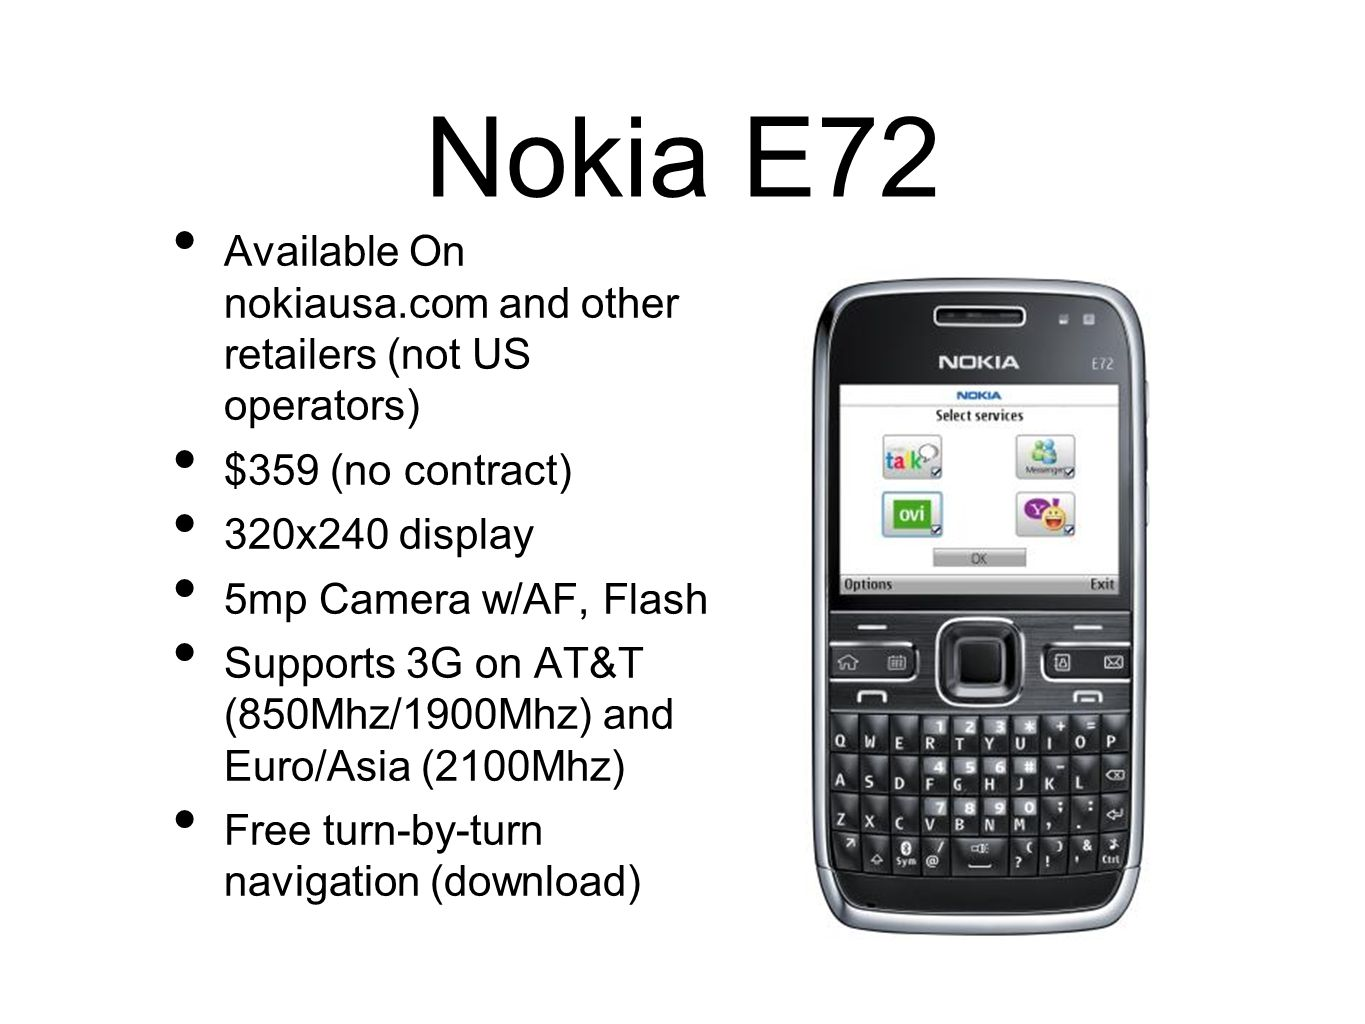 Nokia E72Available On nokiausa.com and other retailers (not US operators) $359 (no contract) 320x240 display.